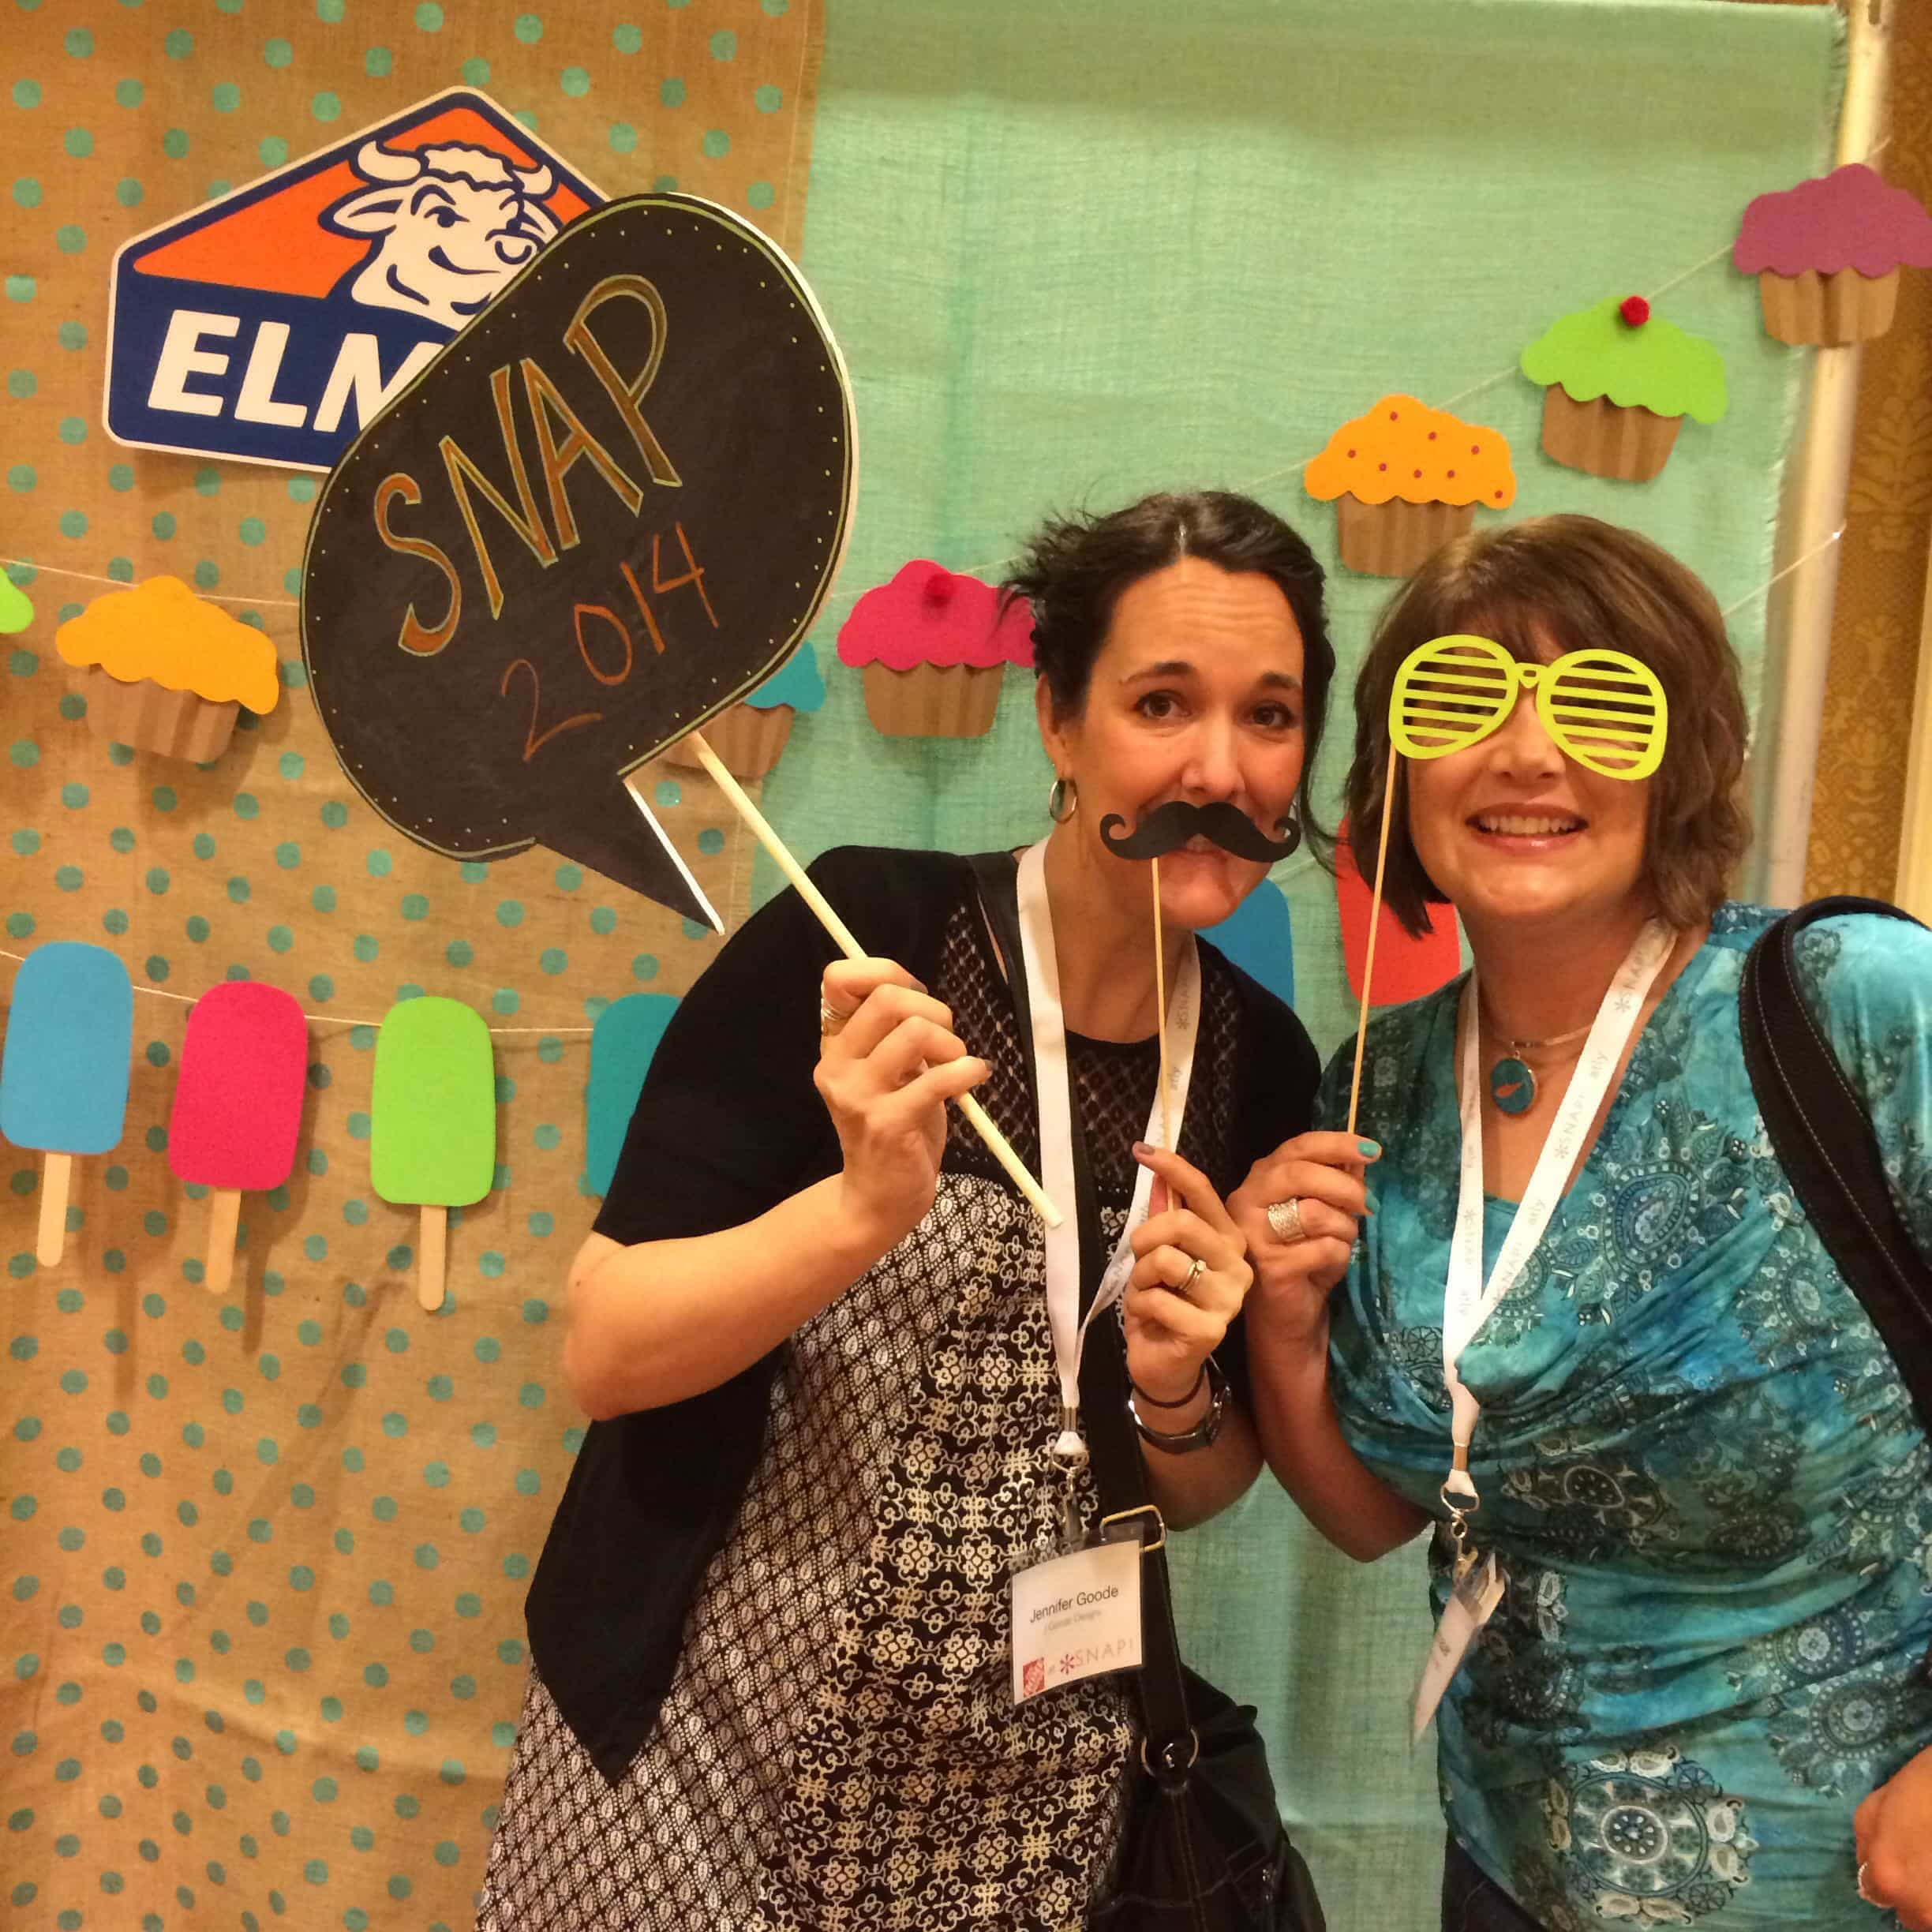 Elmers Glue photo booth at SNAP! 2014